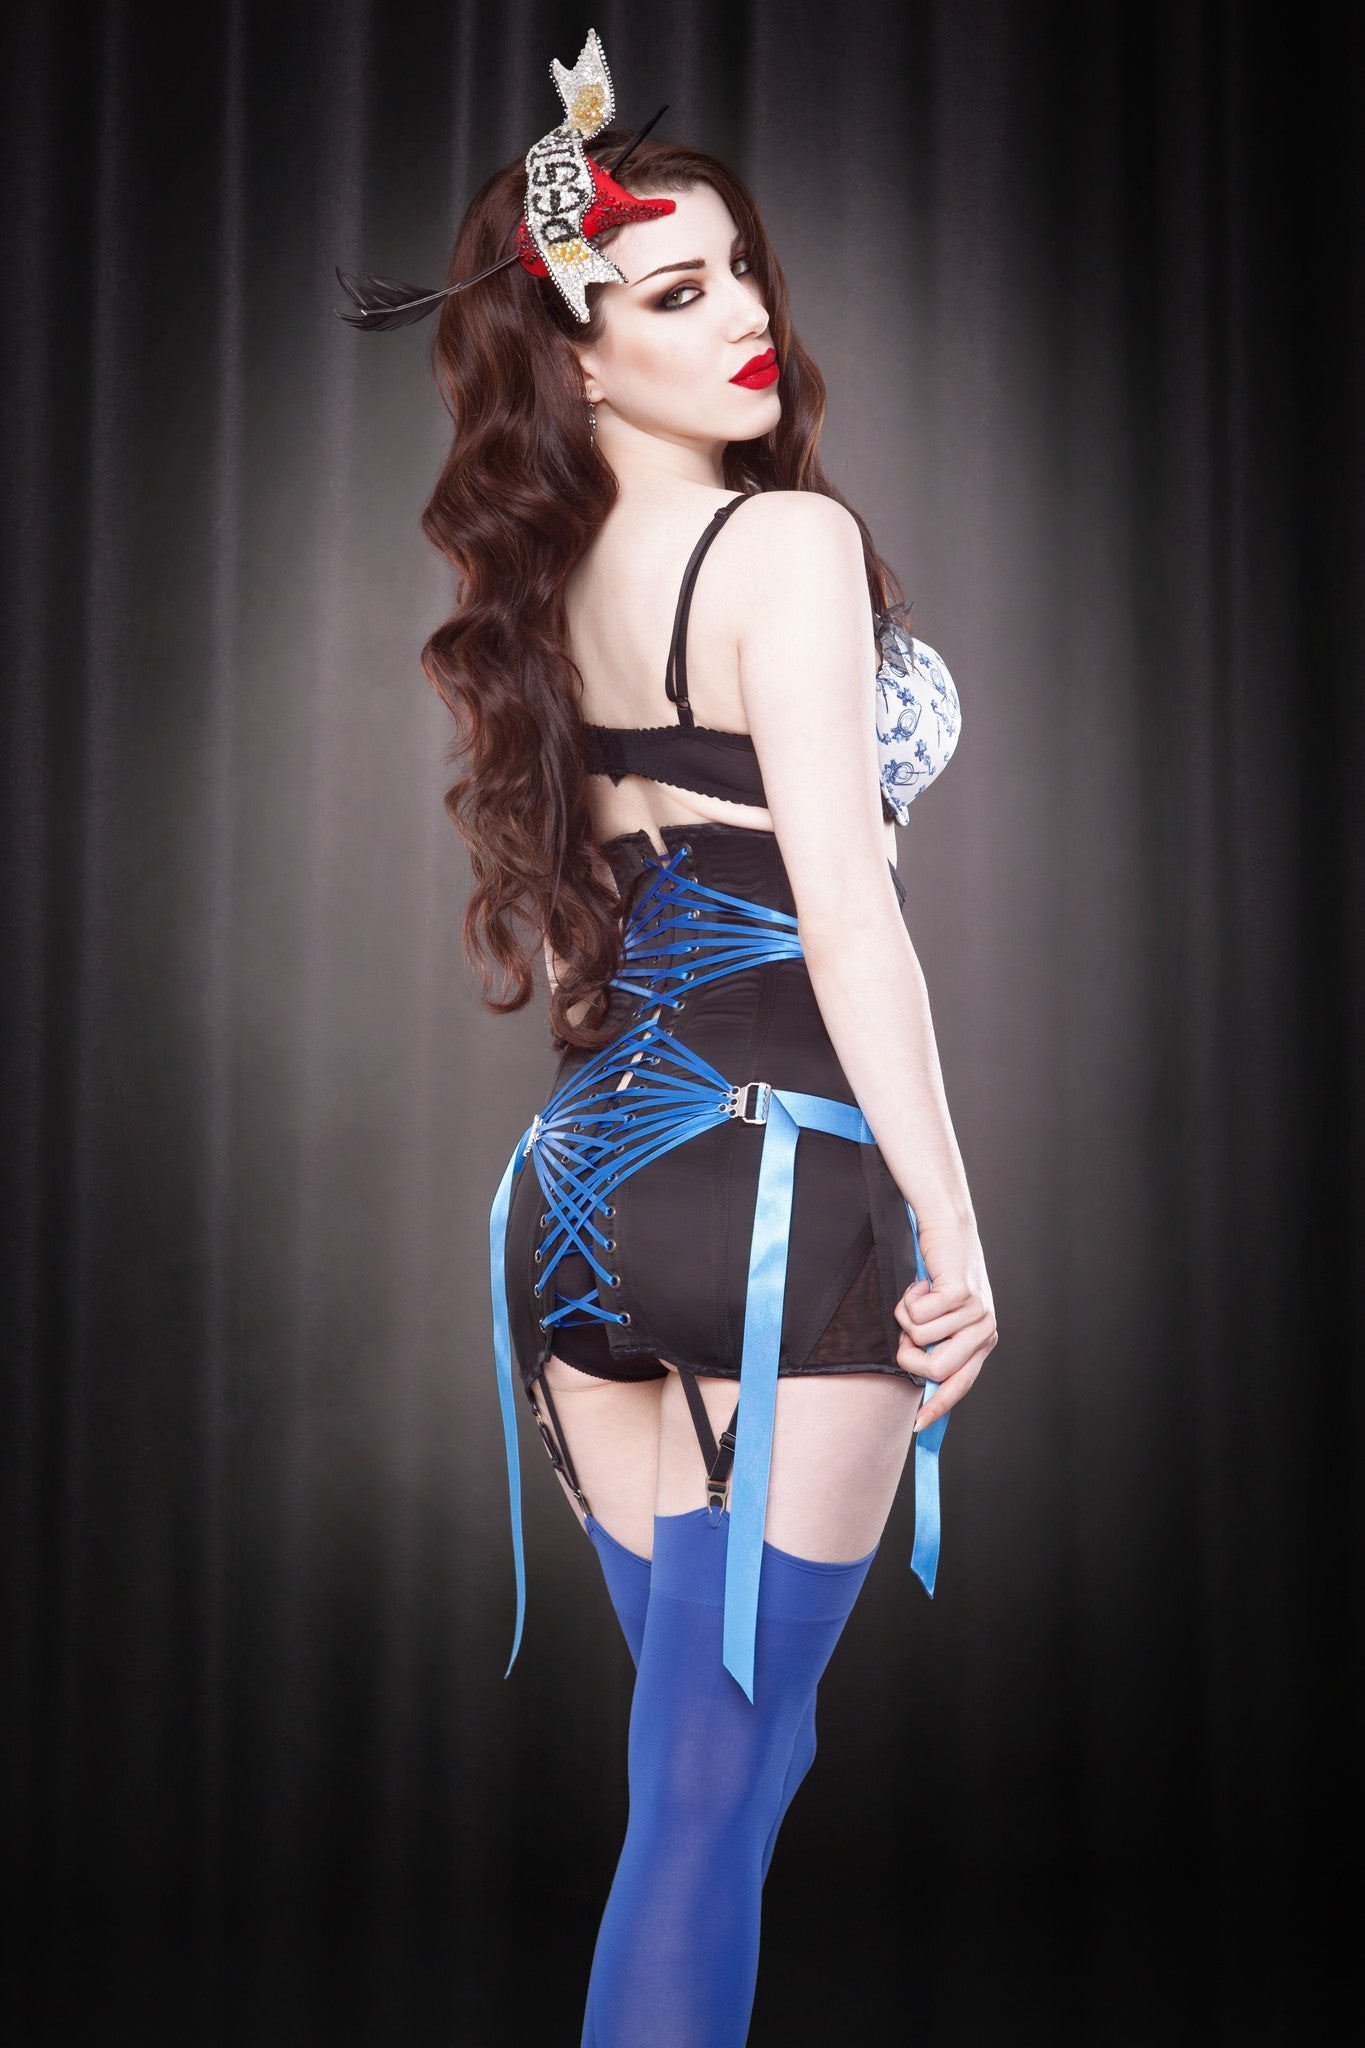 j leigh lingerie Made To Order Blue Fan Lace Girdle ...